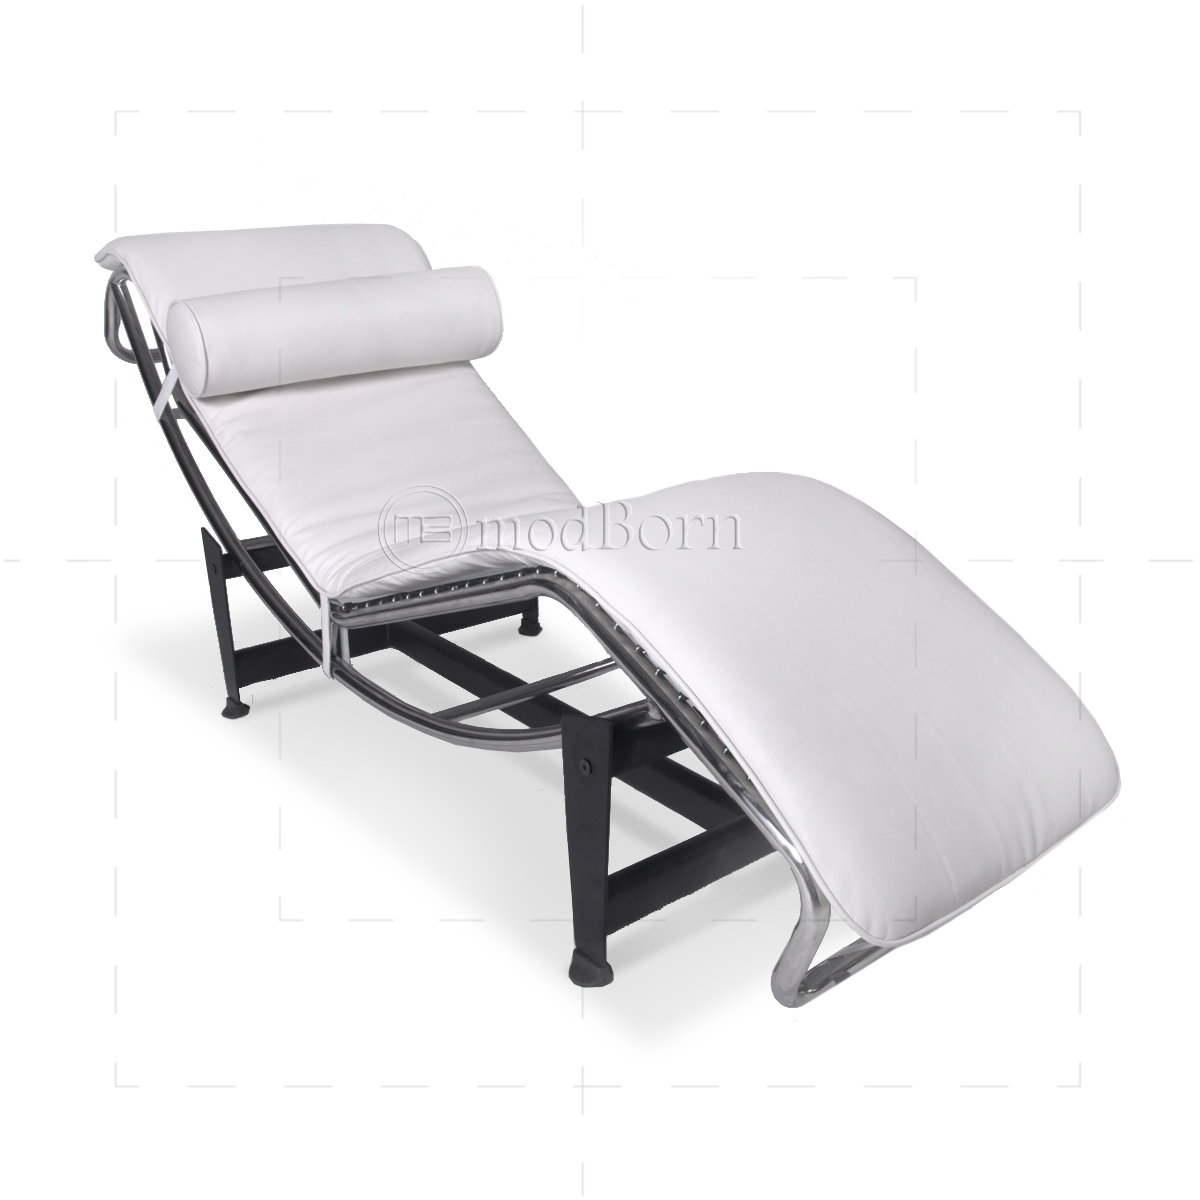 Le corbusier style lc4 chaise longue white leather replica for Chaise longue design le corbusier